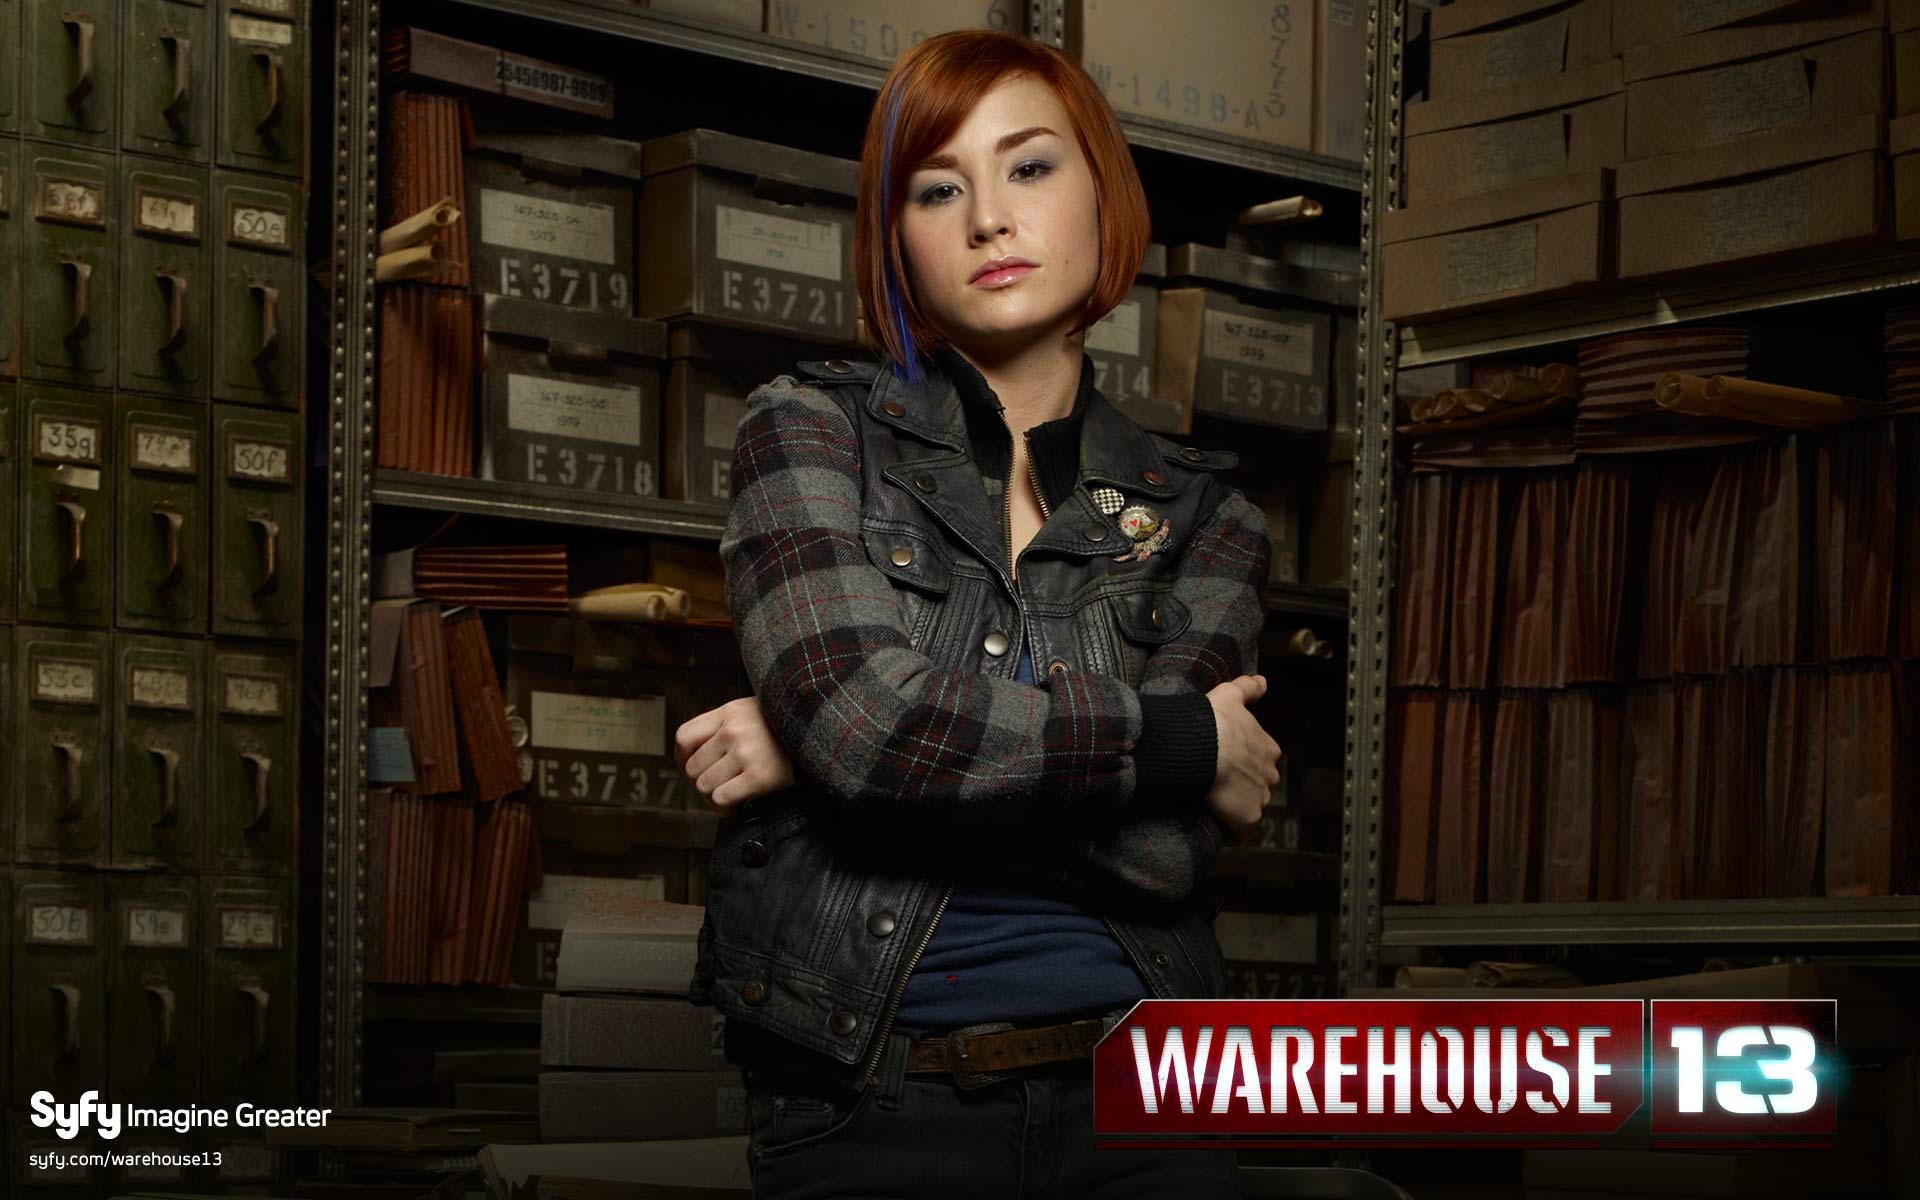 ... 13 douglas fargo played by neil grayston returns to warehouse 13 for a